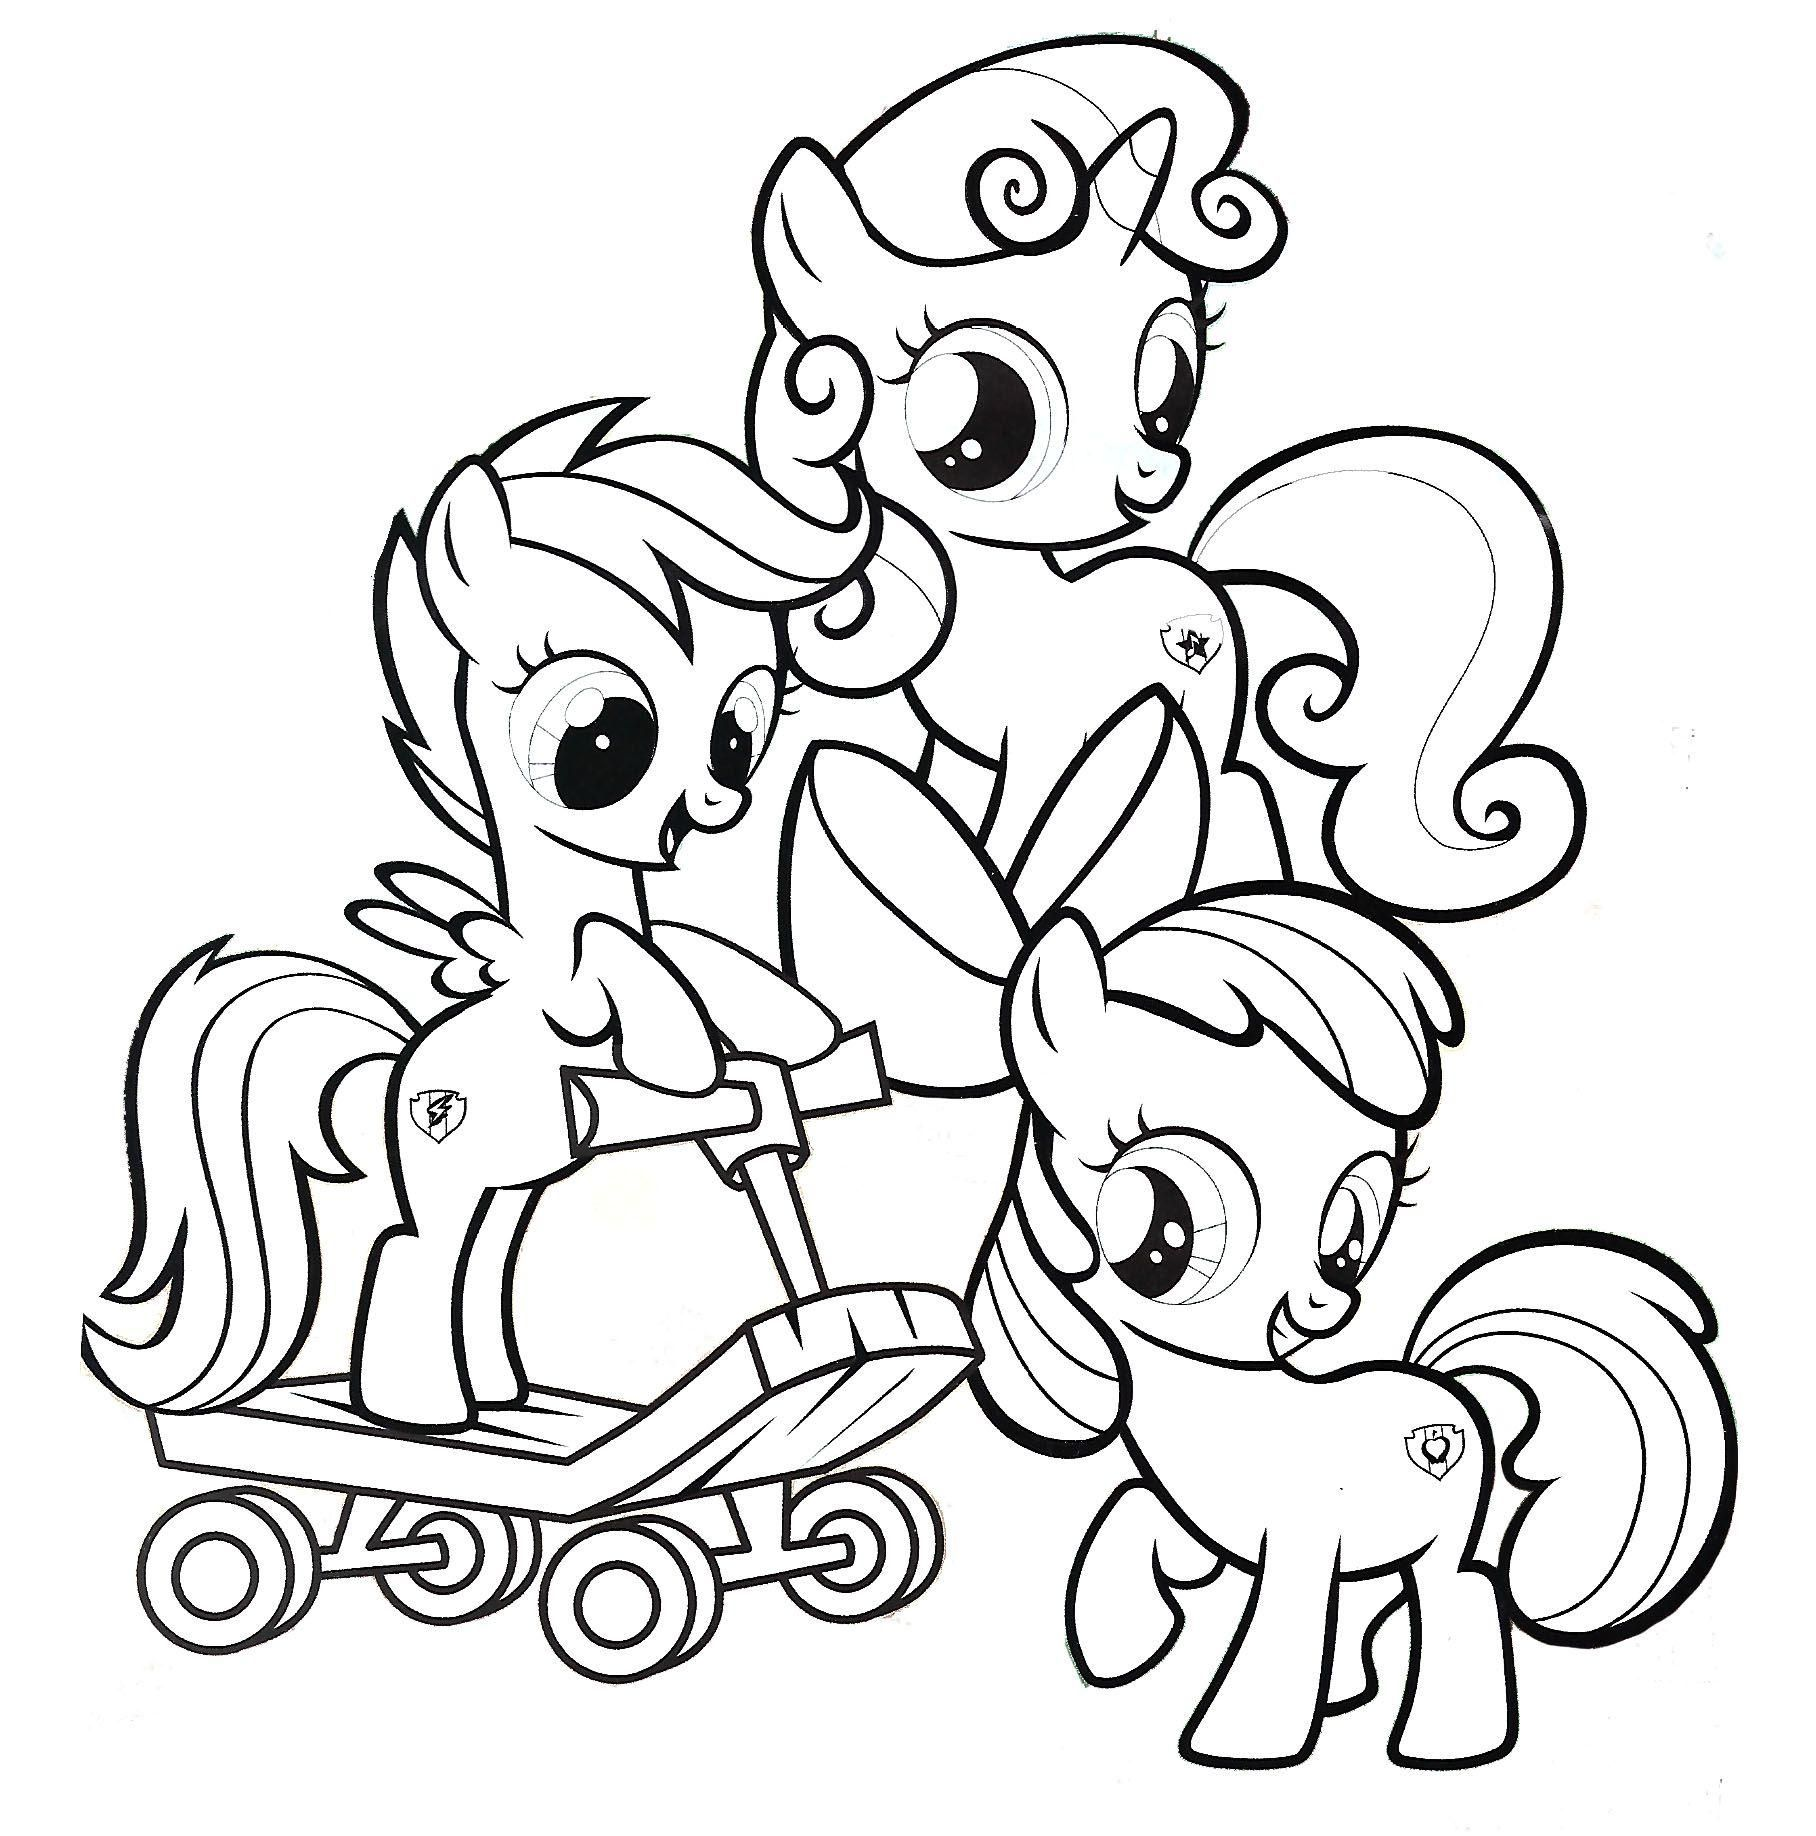 Coloring Pages My Little Pony | My little pony coloring ...